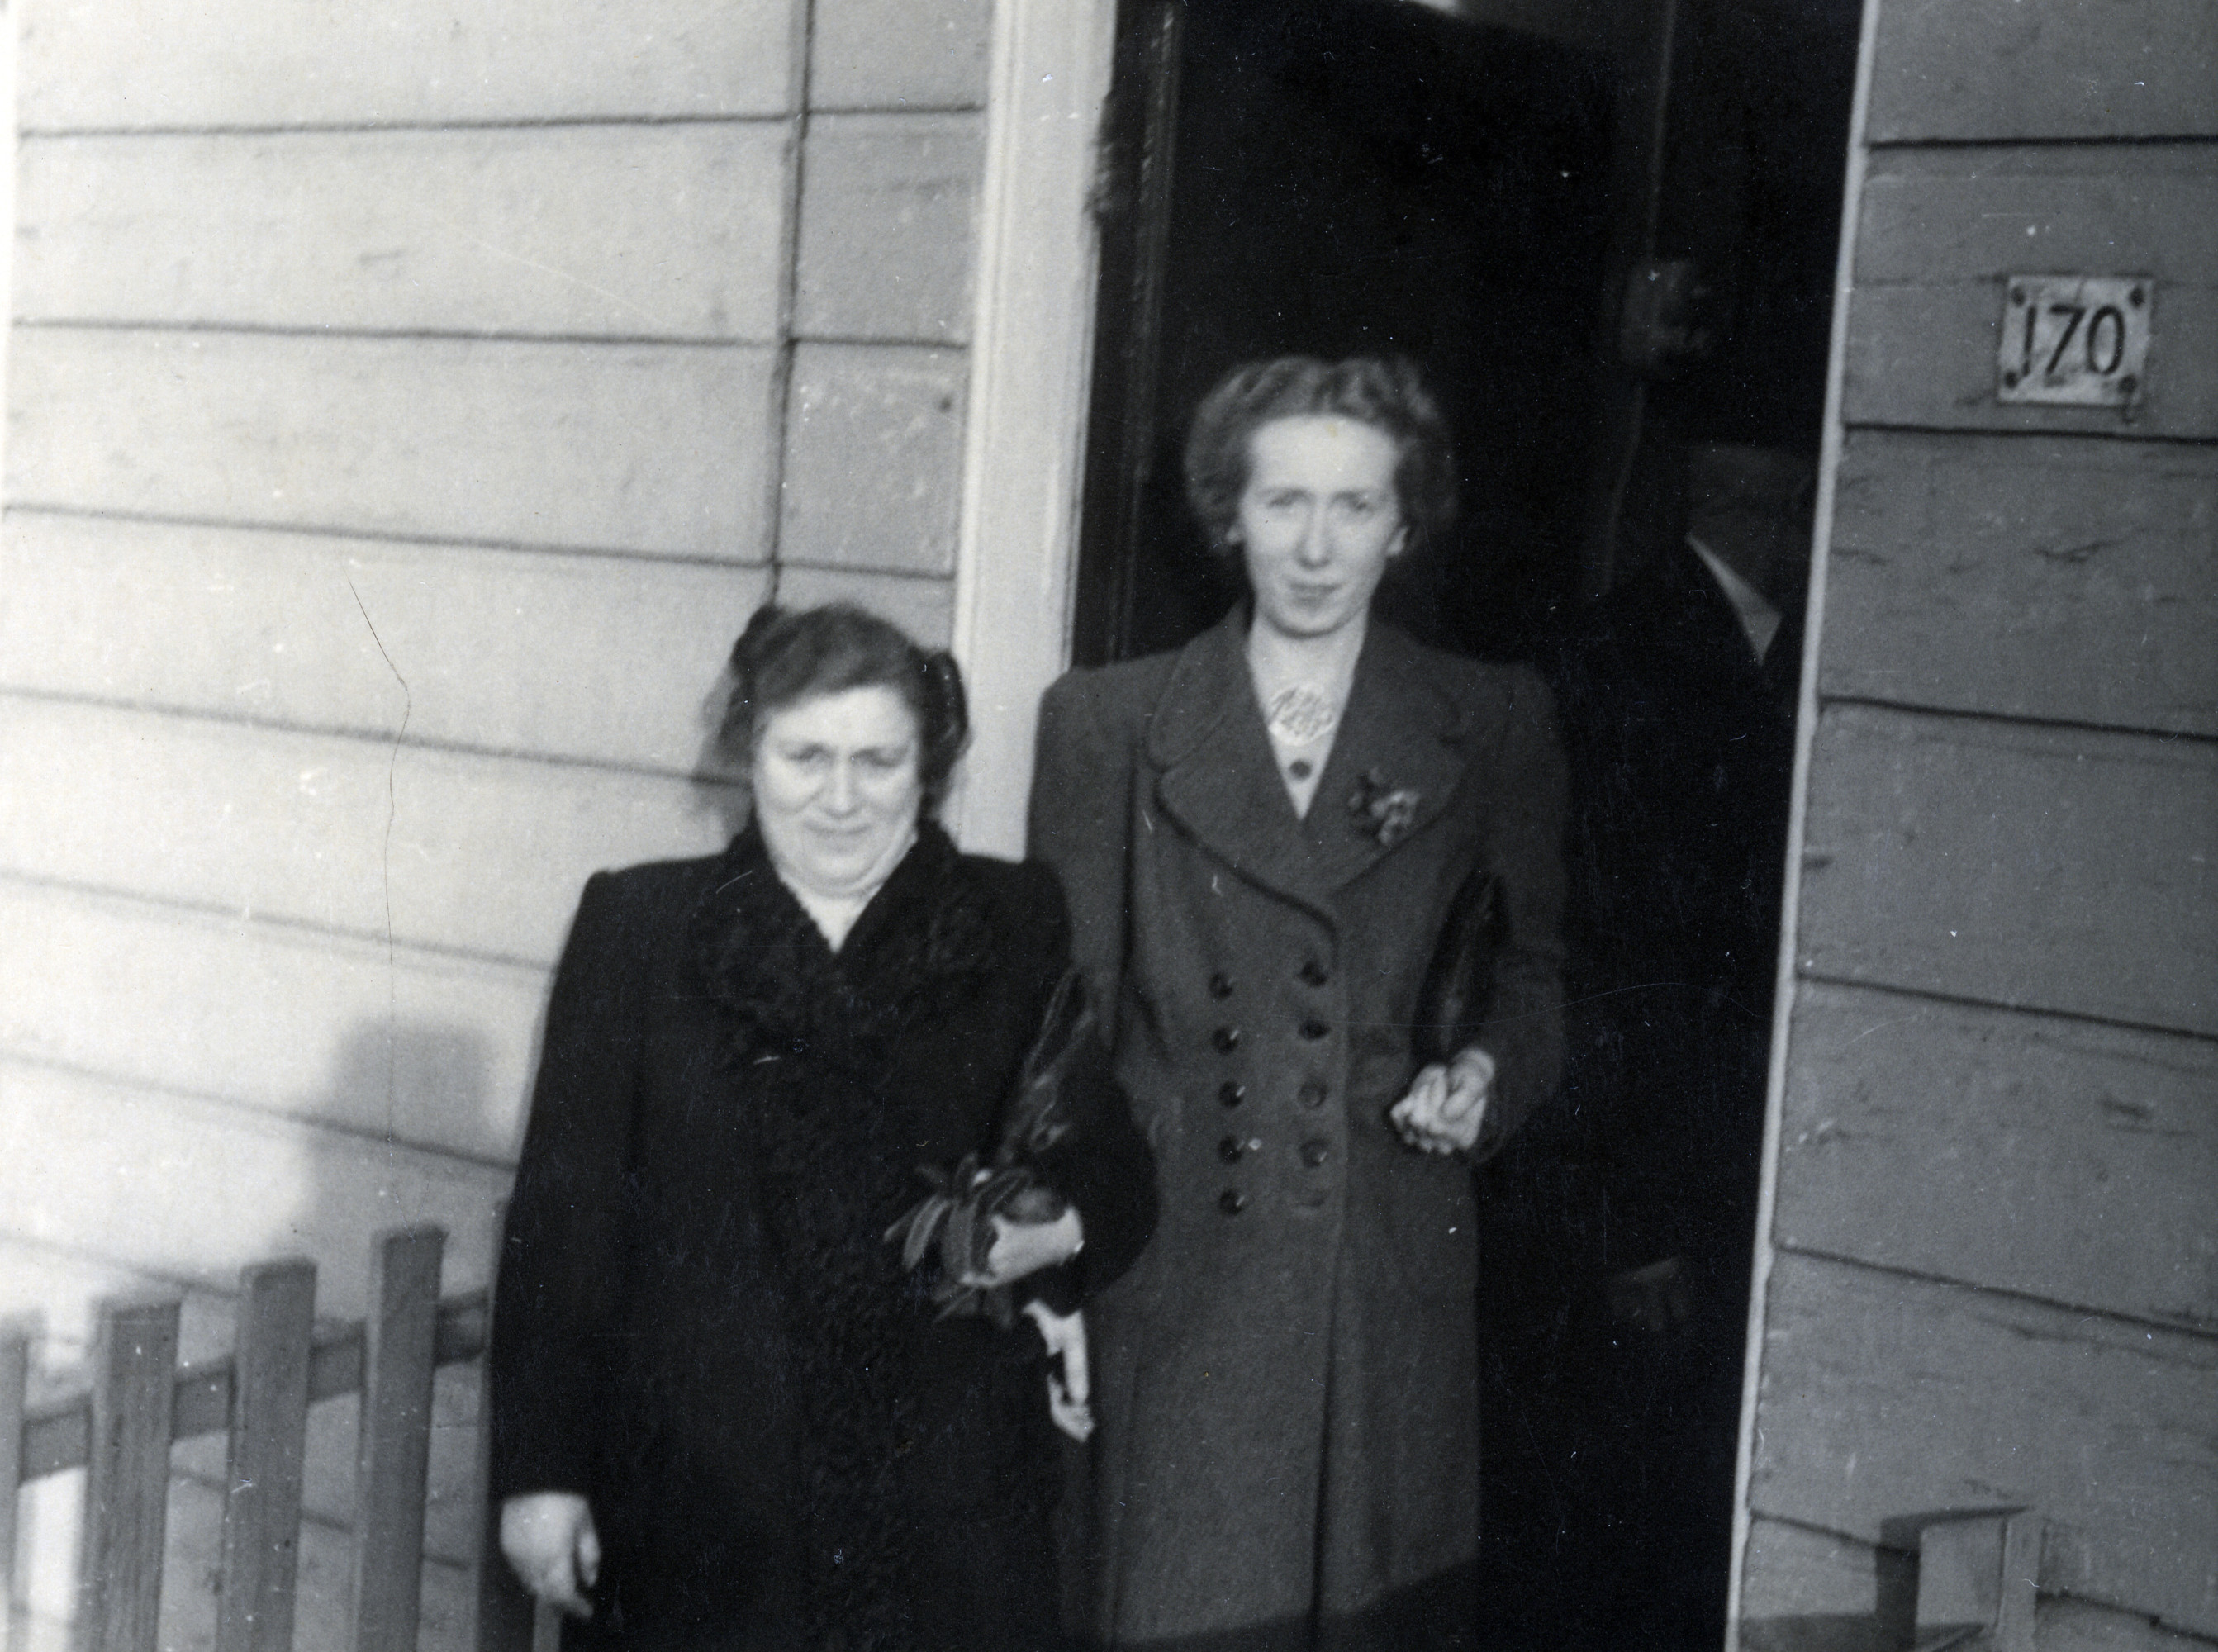 A Jewish woman and her son's rescuer pose for a photograph after the war.  Pictured are Judith Polak and Wietske Selier, who was later recognized as Righteous Among the Nations by Yad Vashem.